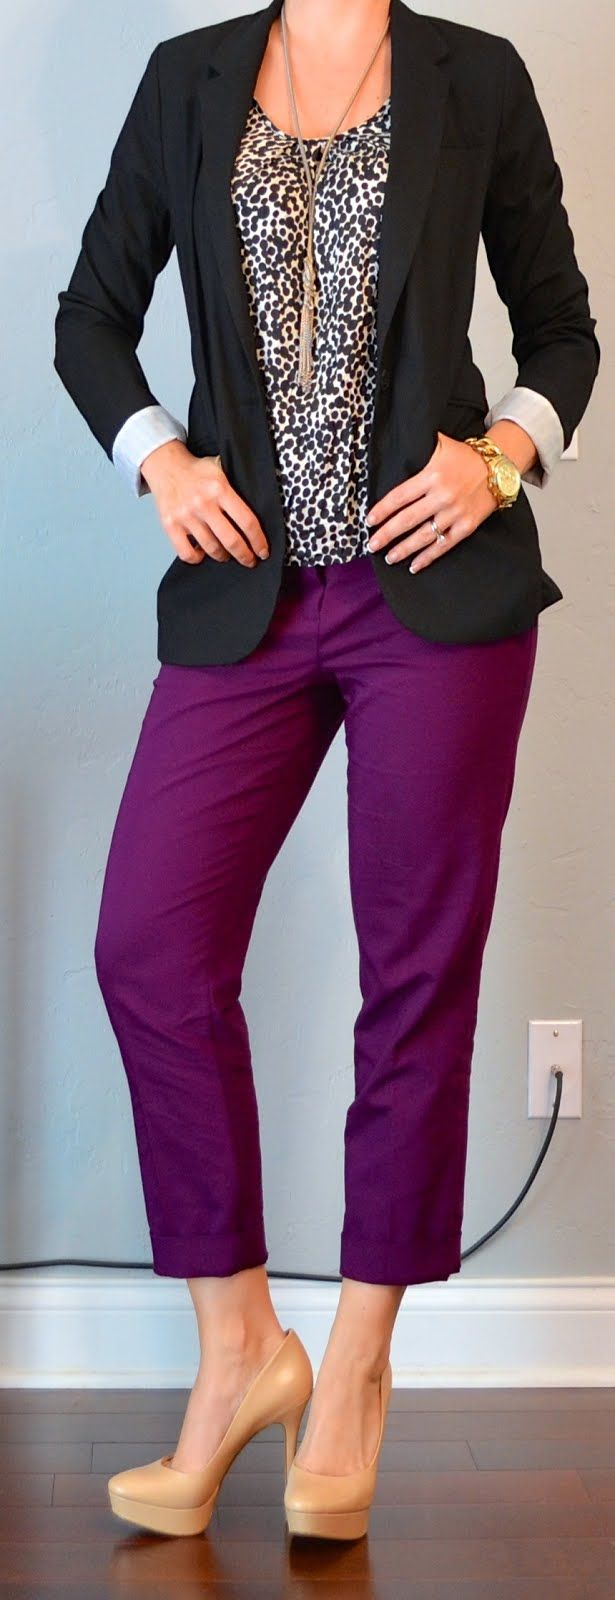 Outfit Posts: black blazer, print blouse, purple cropped pant (don't love the fit on the pants)